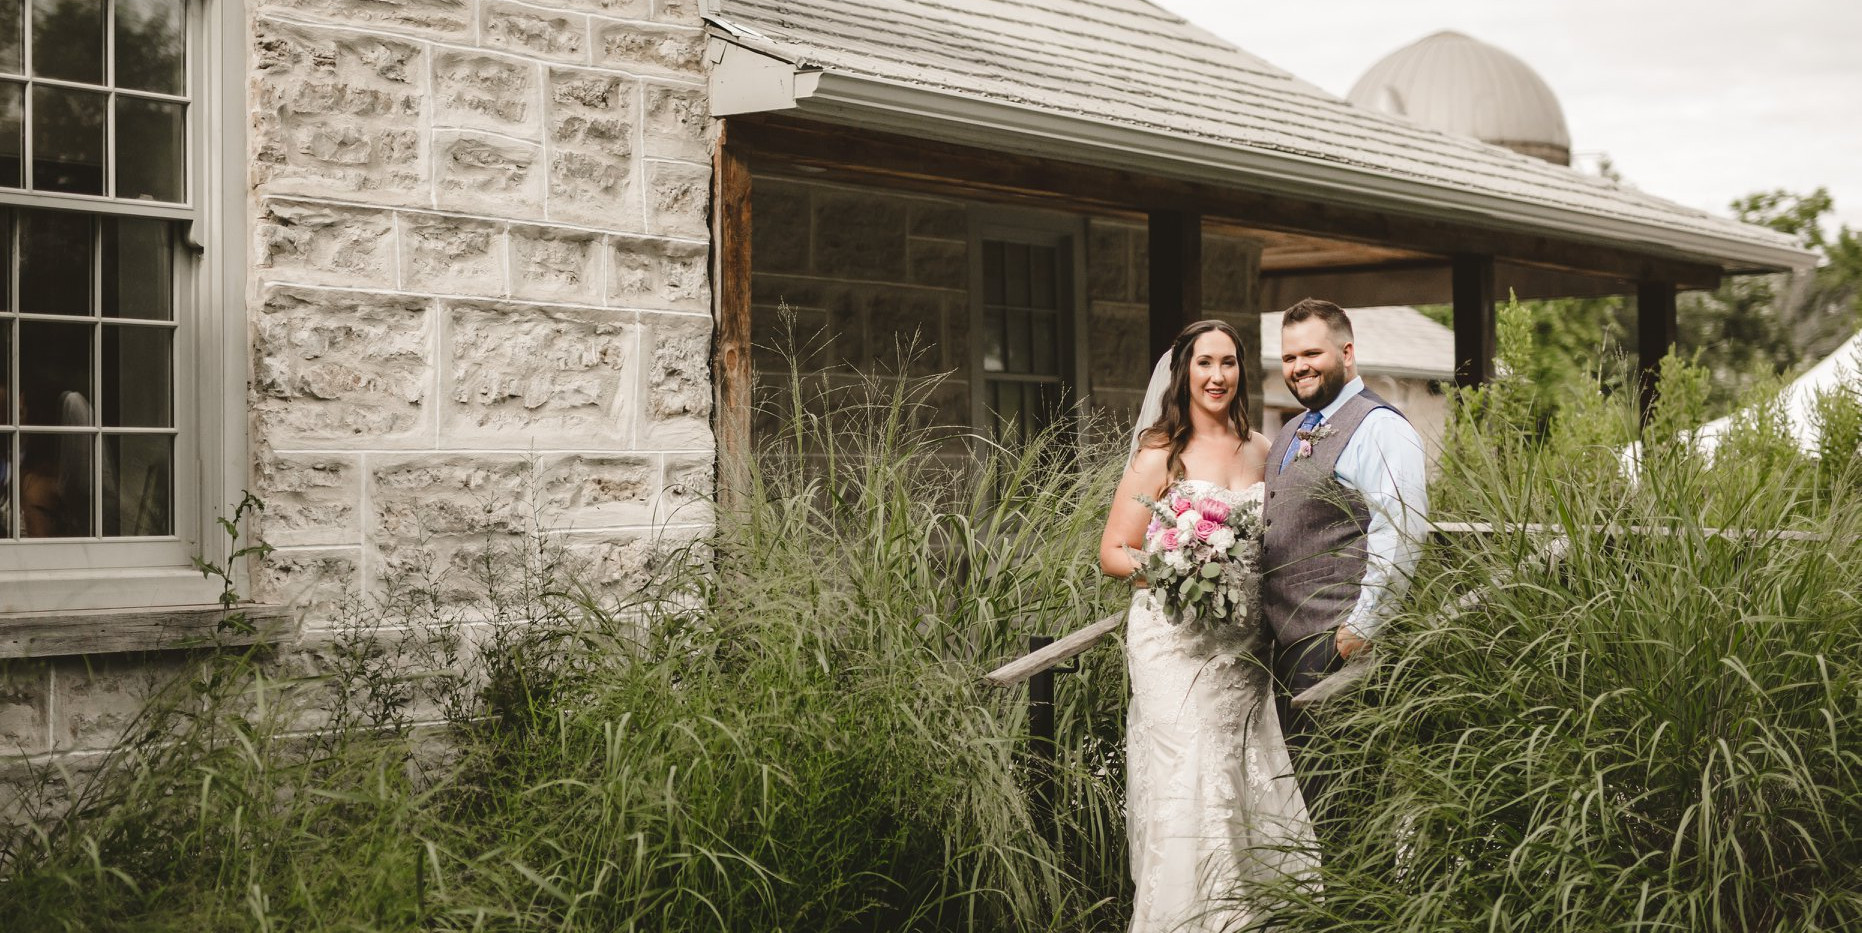 Wide shot of Bride and Groom standing among long grass in front of farmhouse